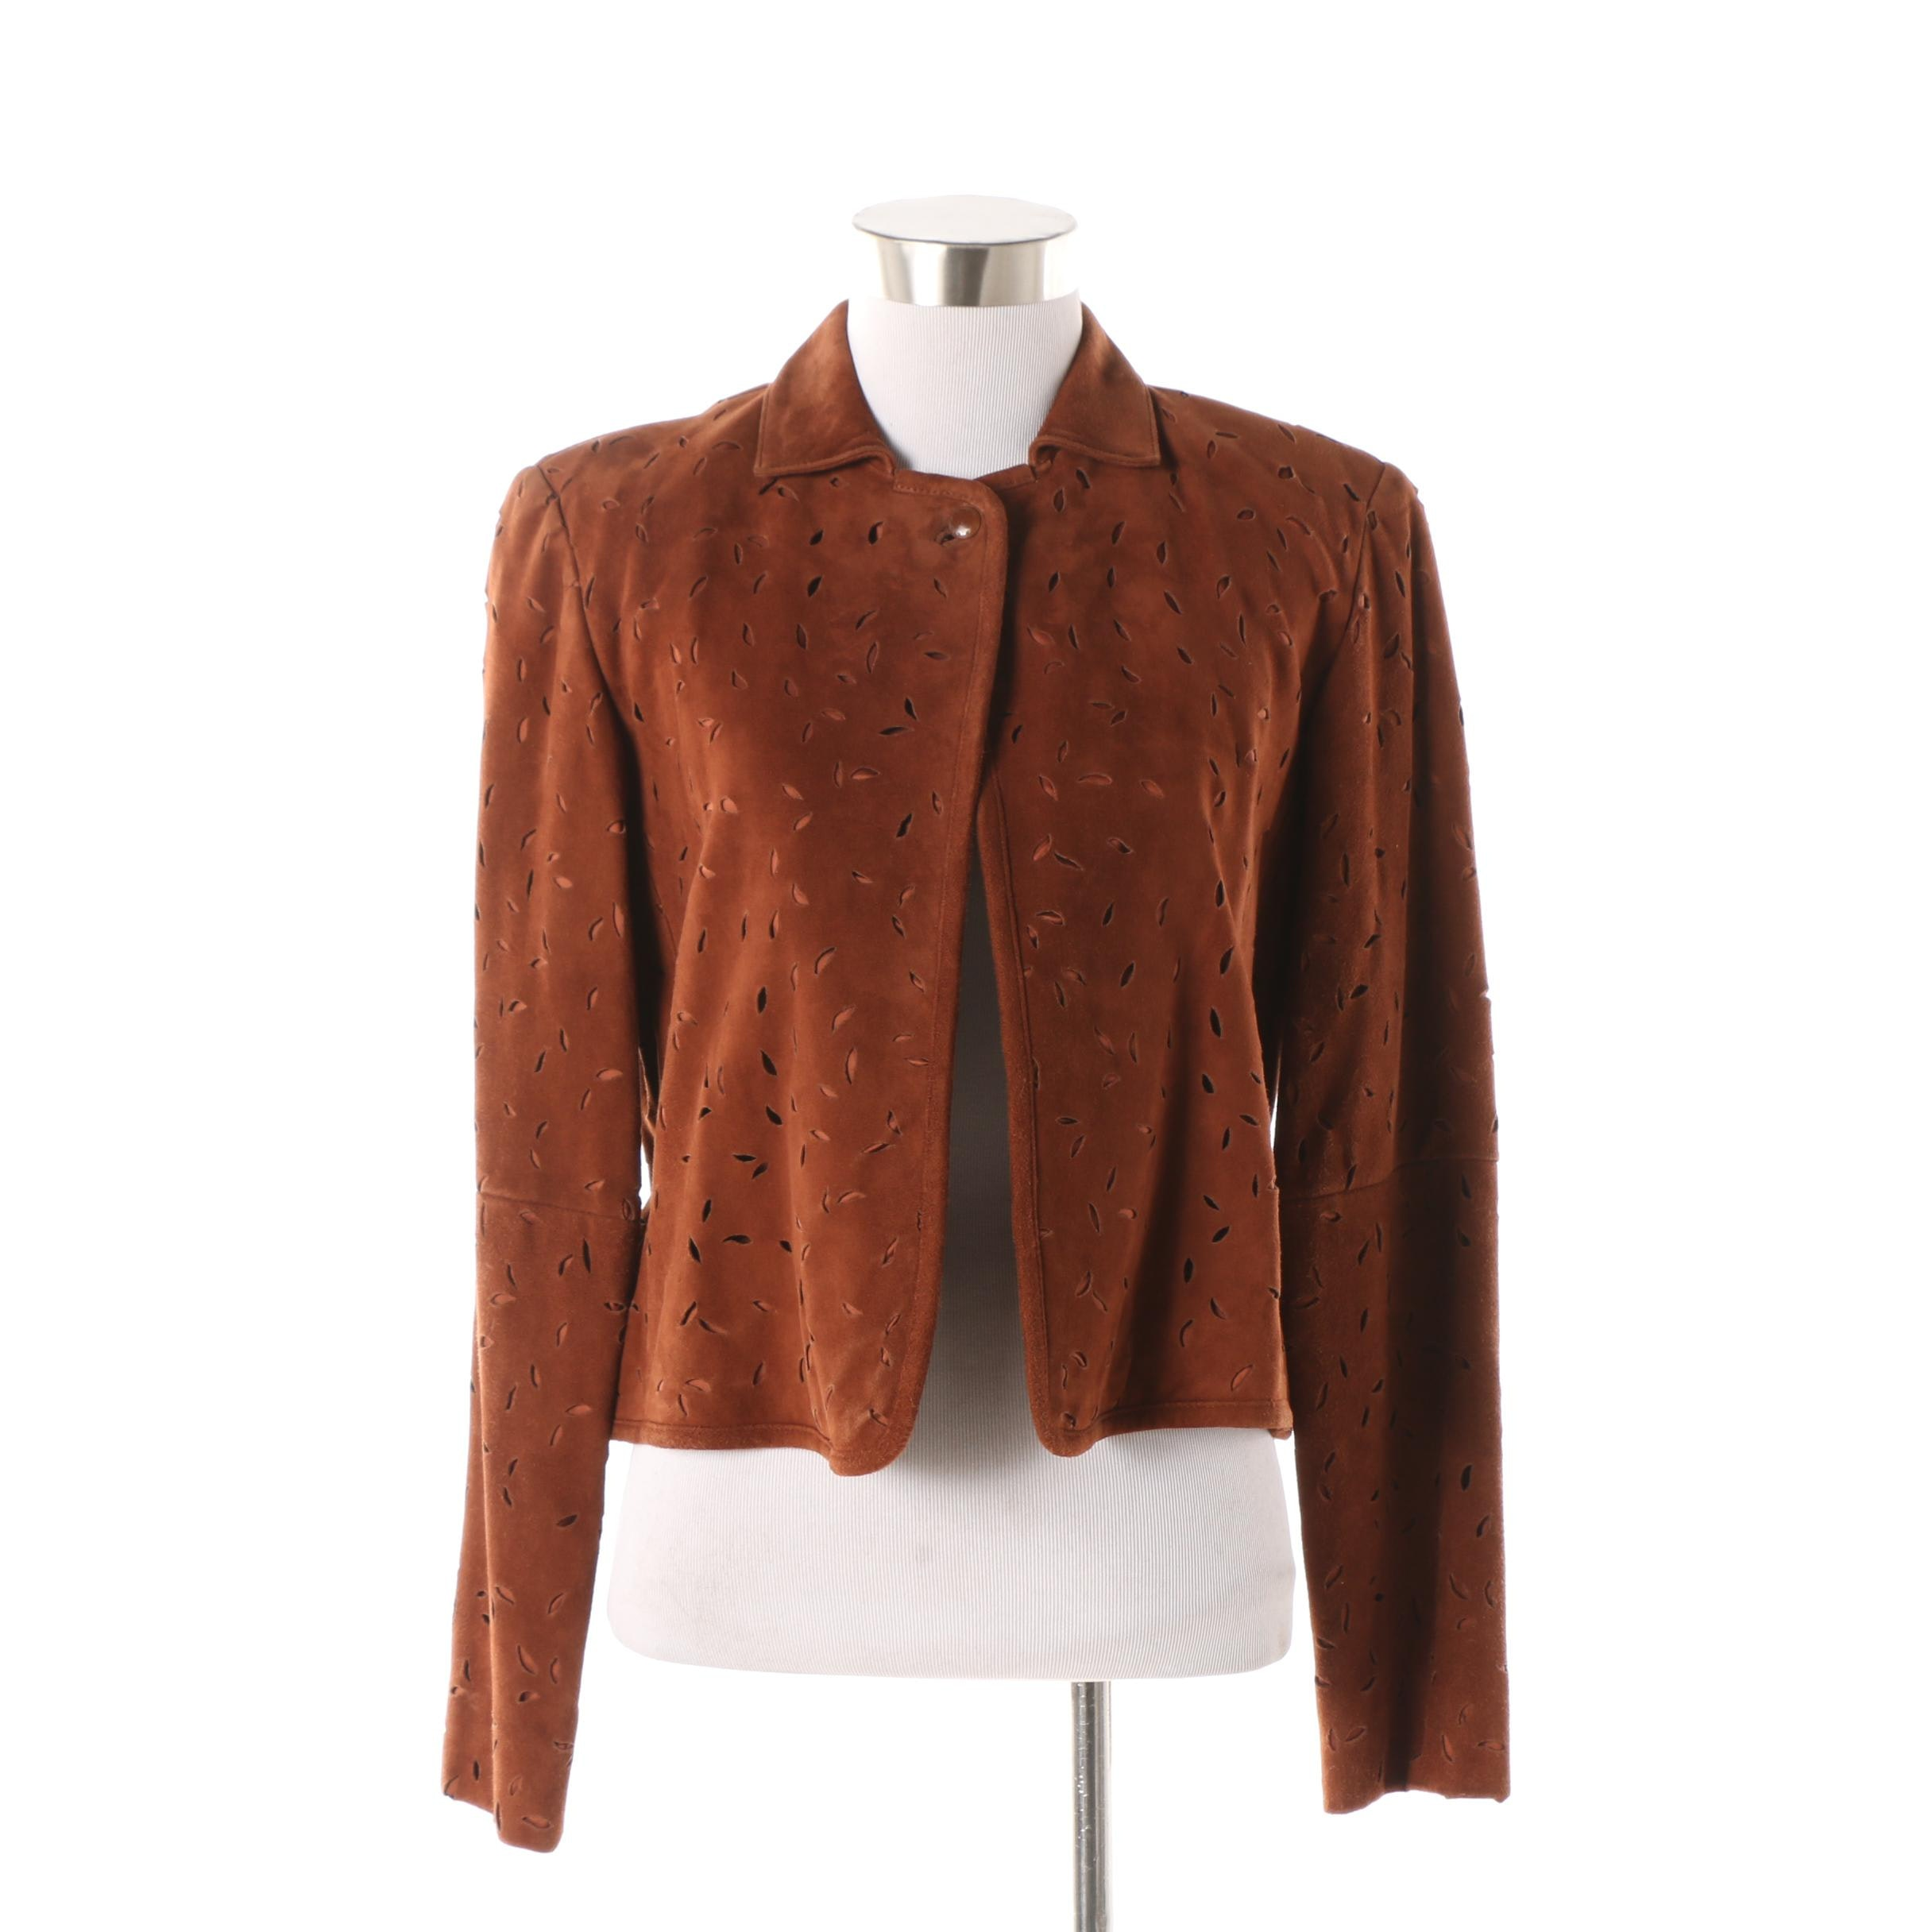 Women's Worth Brown Suede Laser Cut Jacket